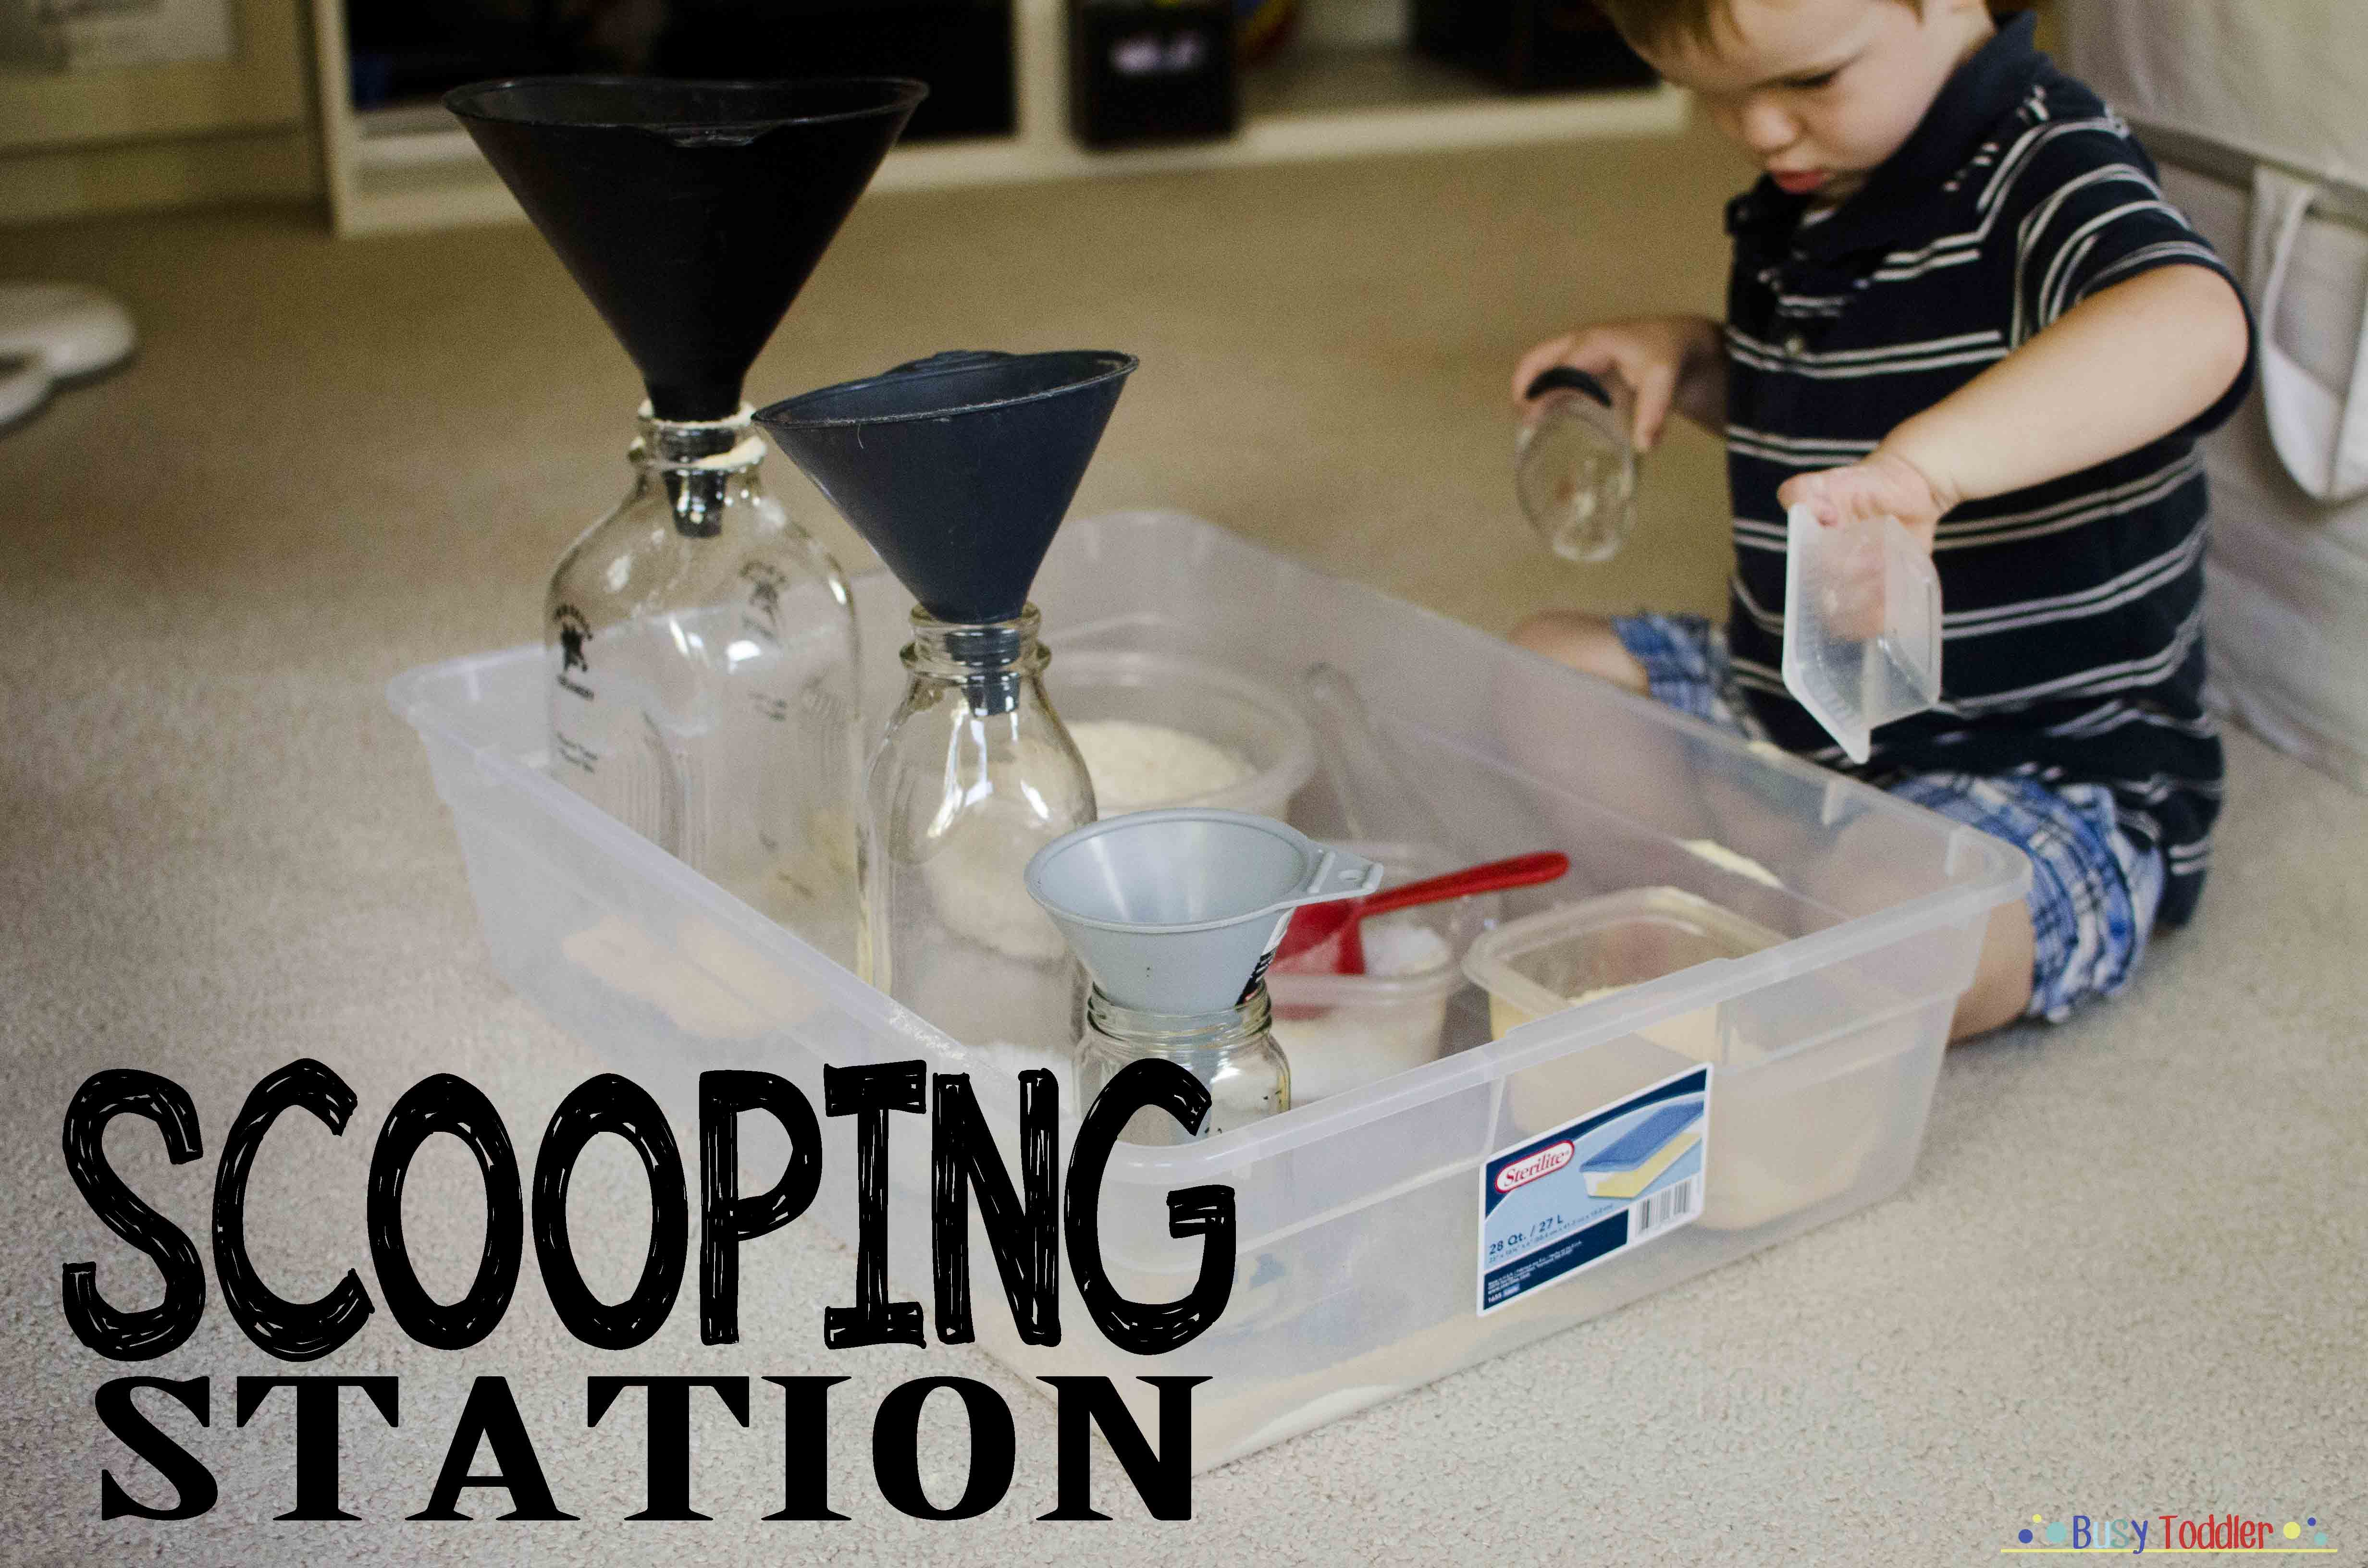 Scooping Station: a no-cost, high fun toddler activity